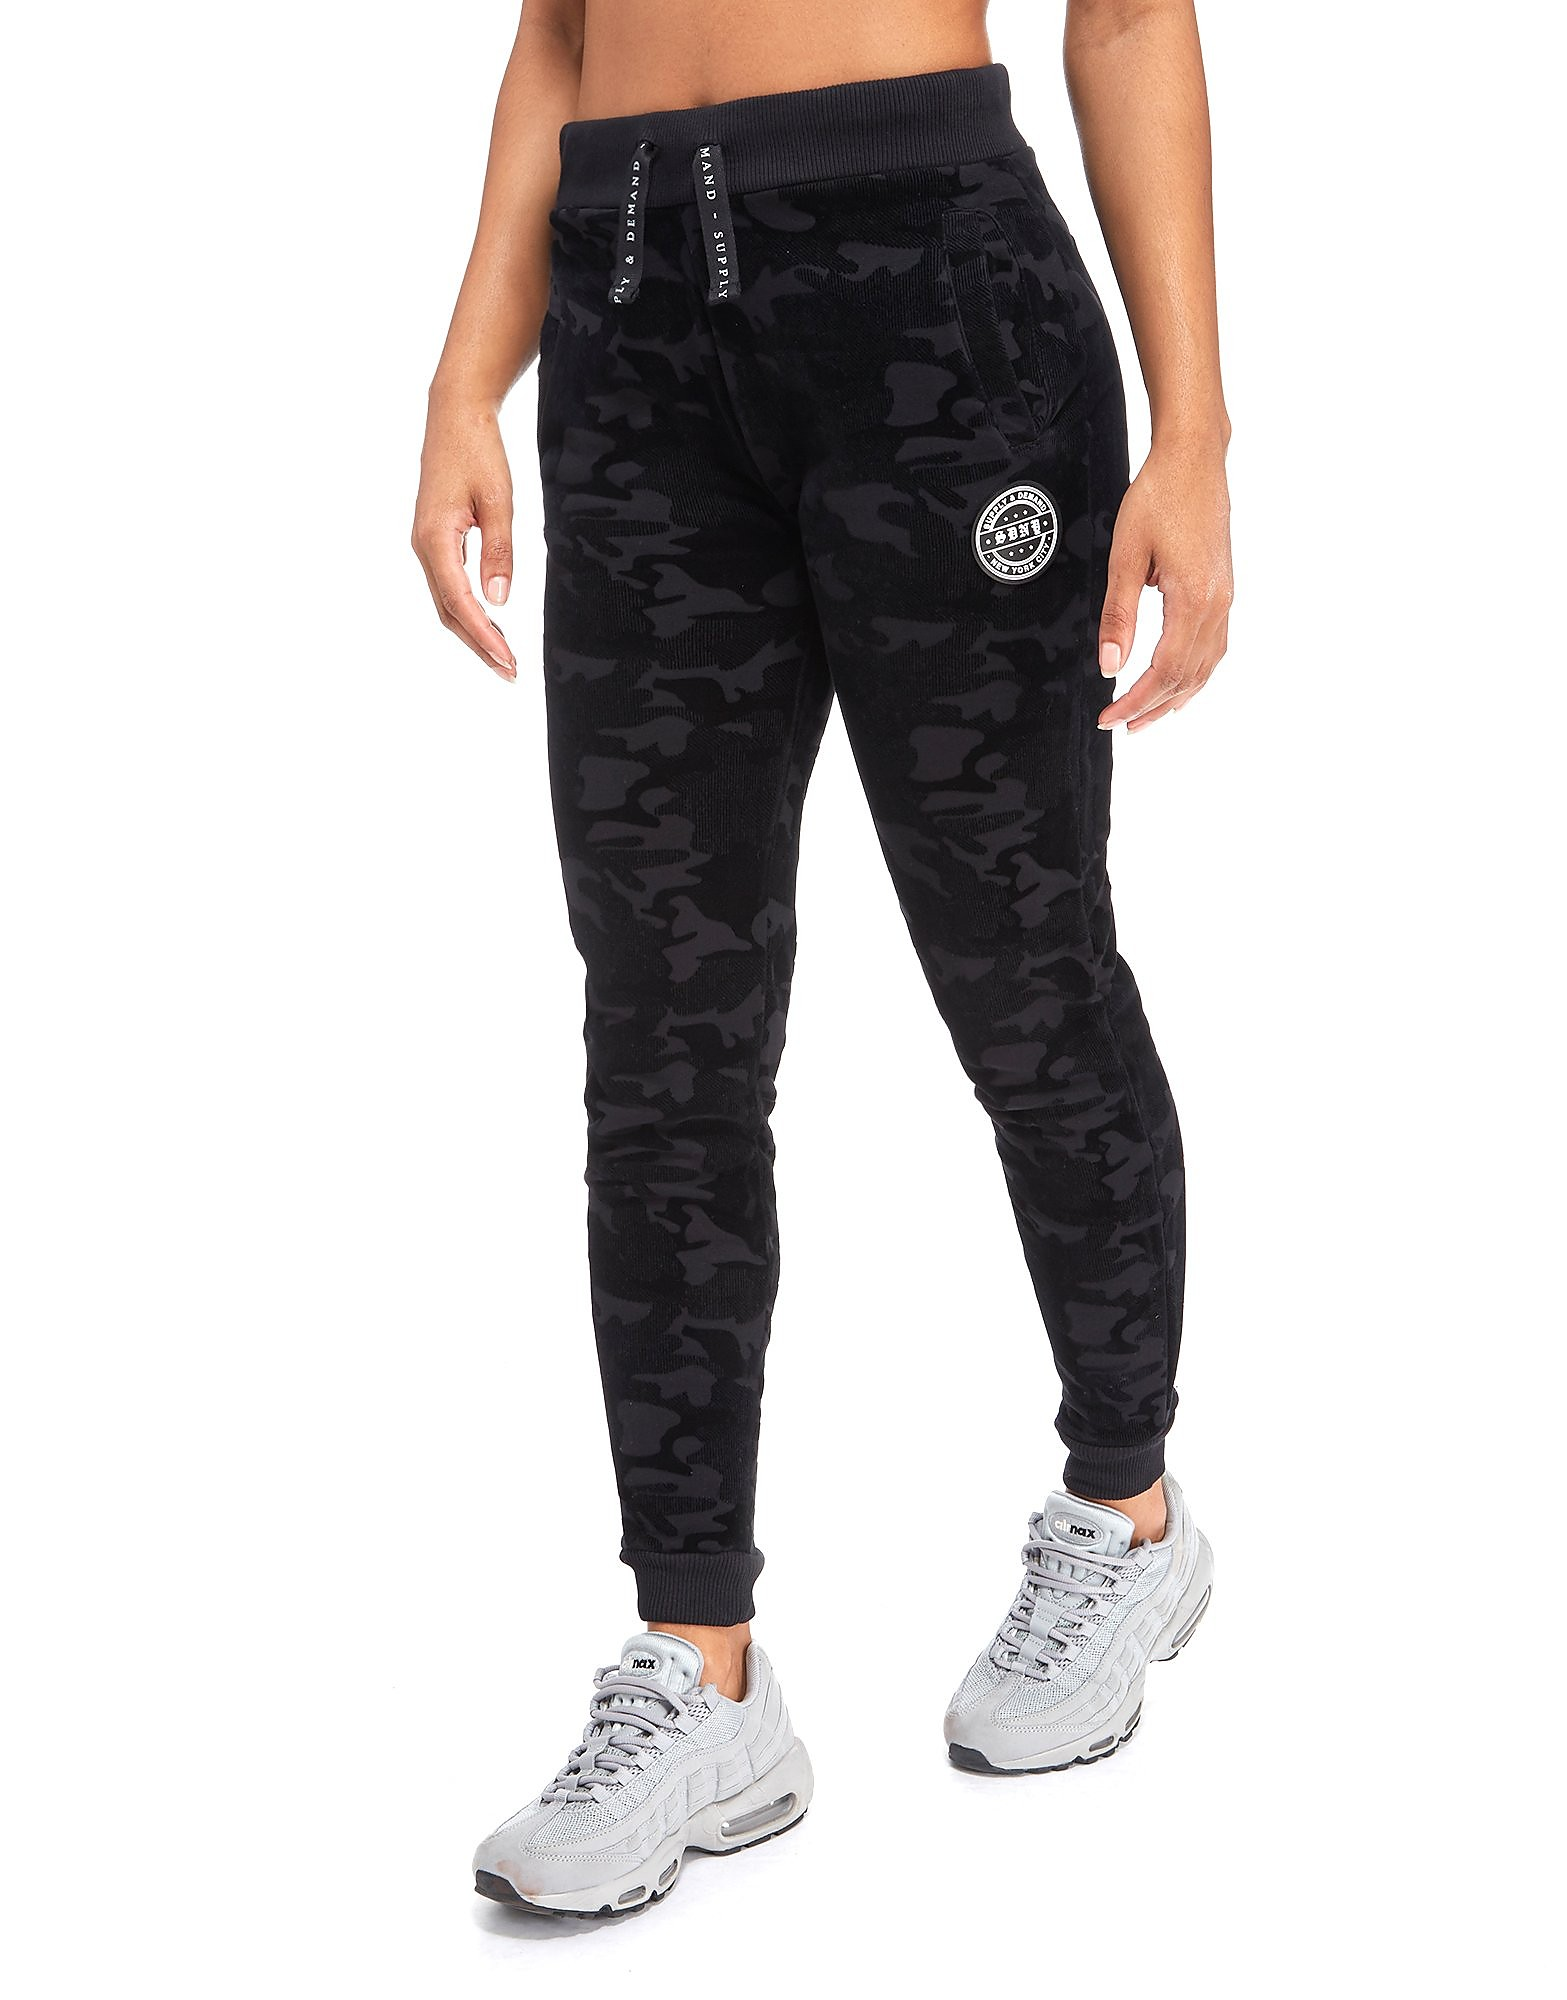 Supply & Demand Velour Camo Tracksuit Bottoms - Only at JD - Black, Black